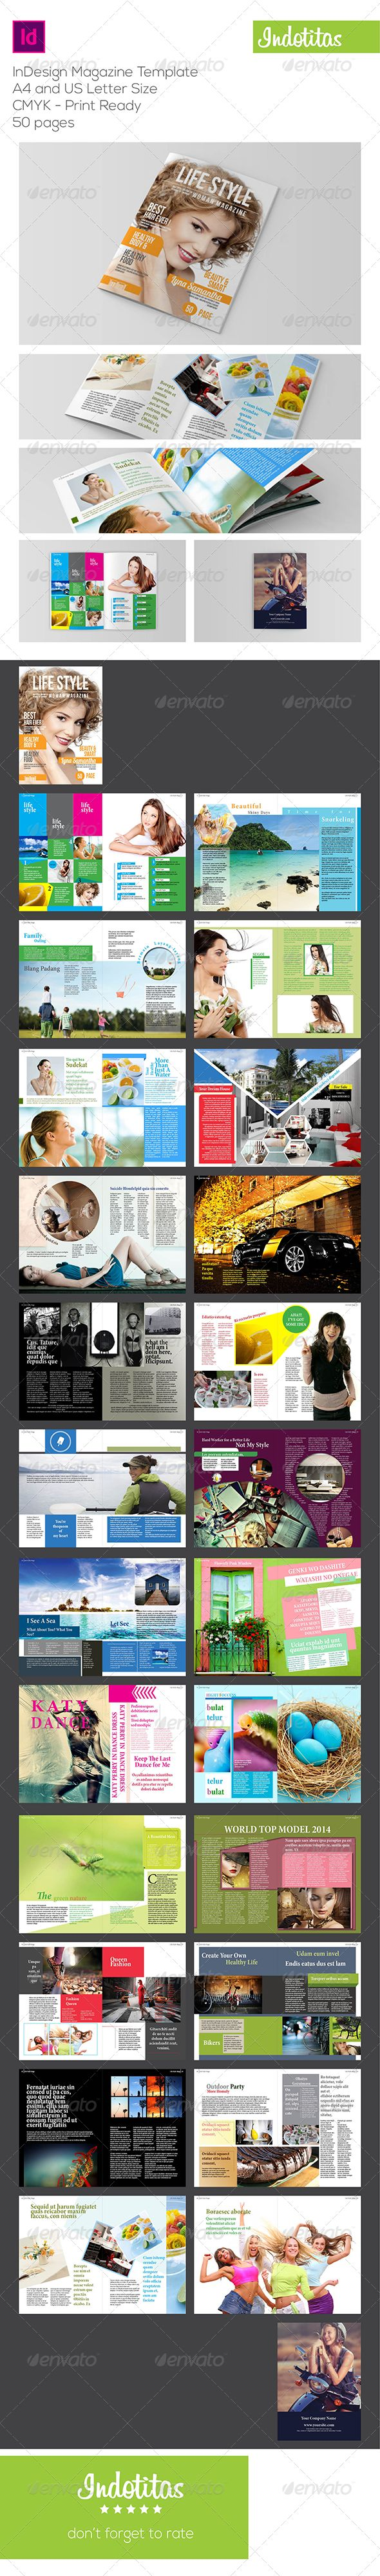 InDesign Magazine Template — InDesign INDD #customizable #elegant • Available here → https://graphicriver.net/item/-indesign-magazine-template-/6827588?ref=pxcr